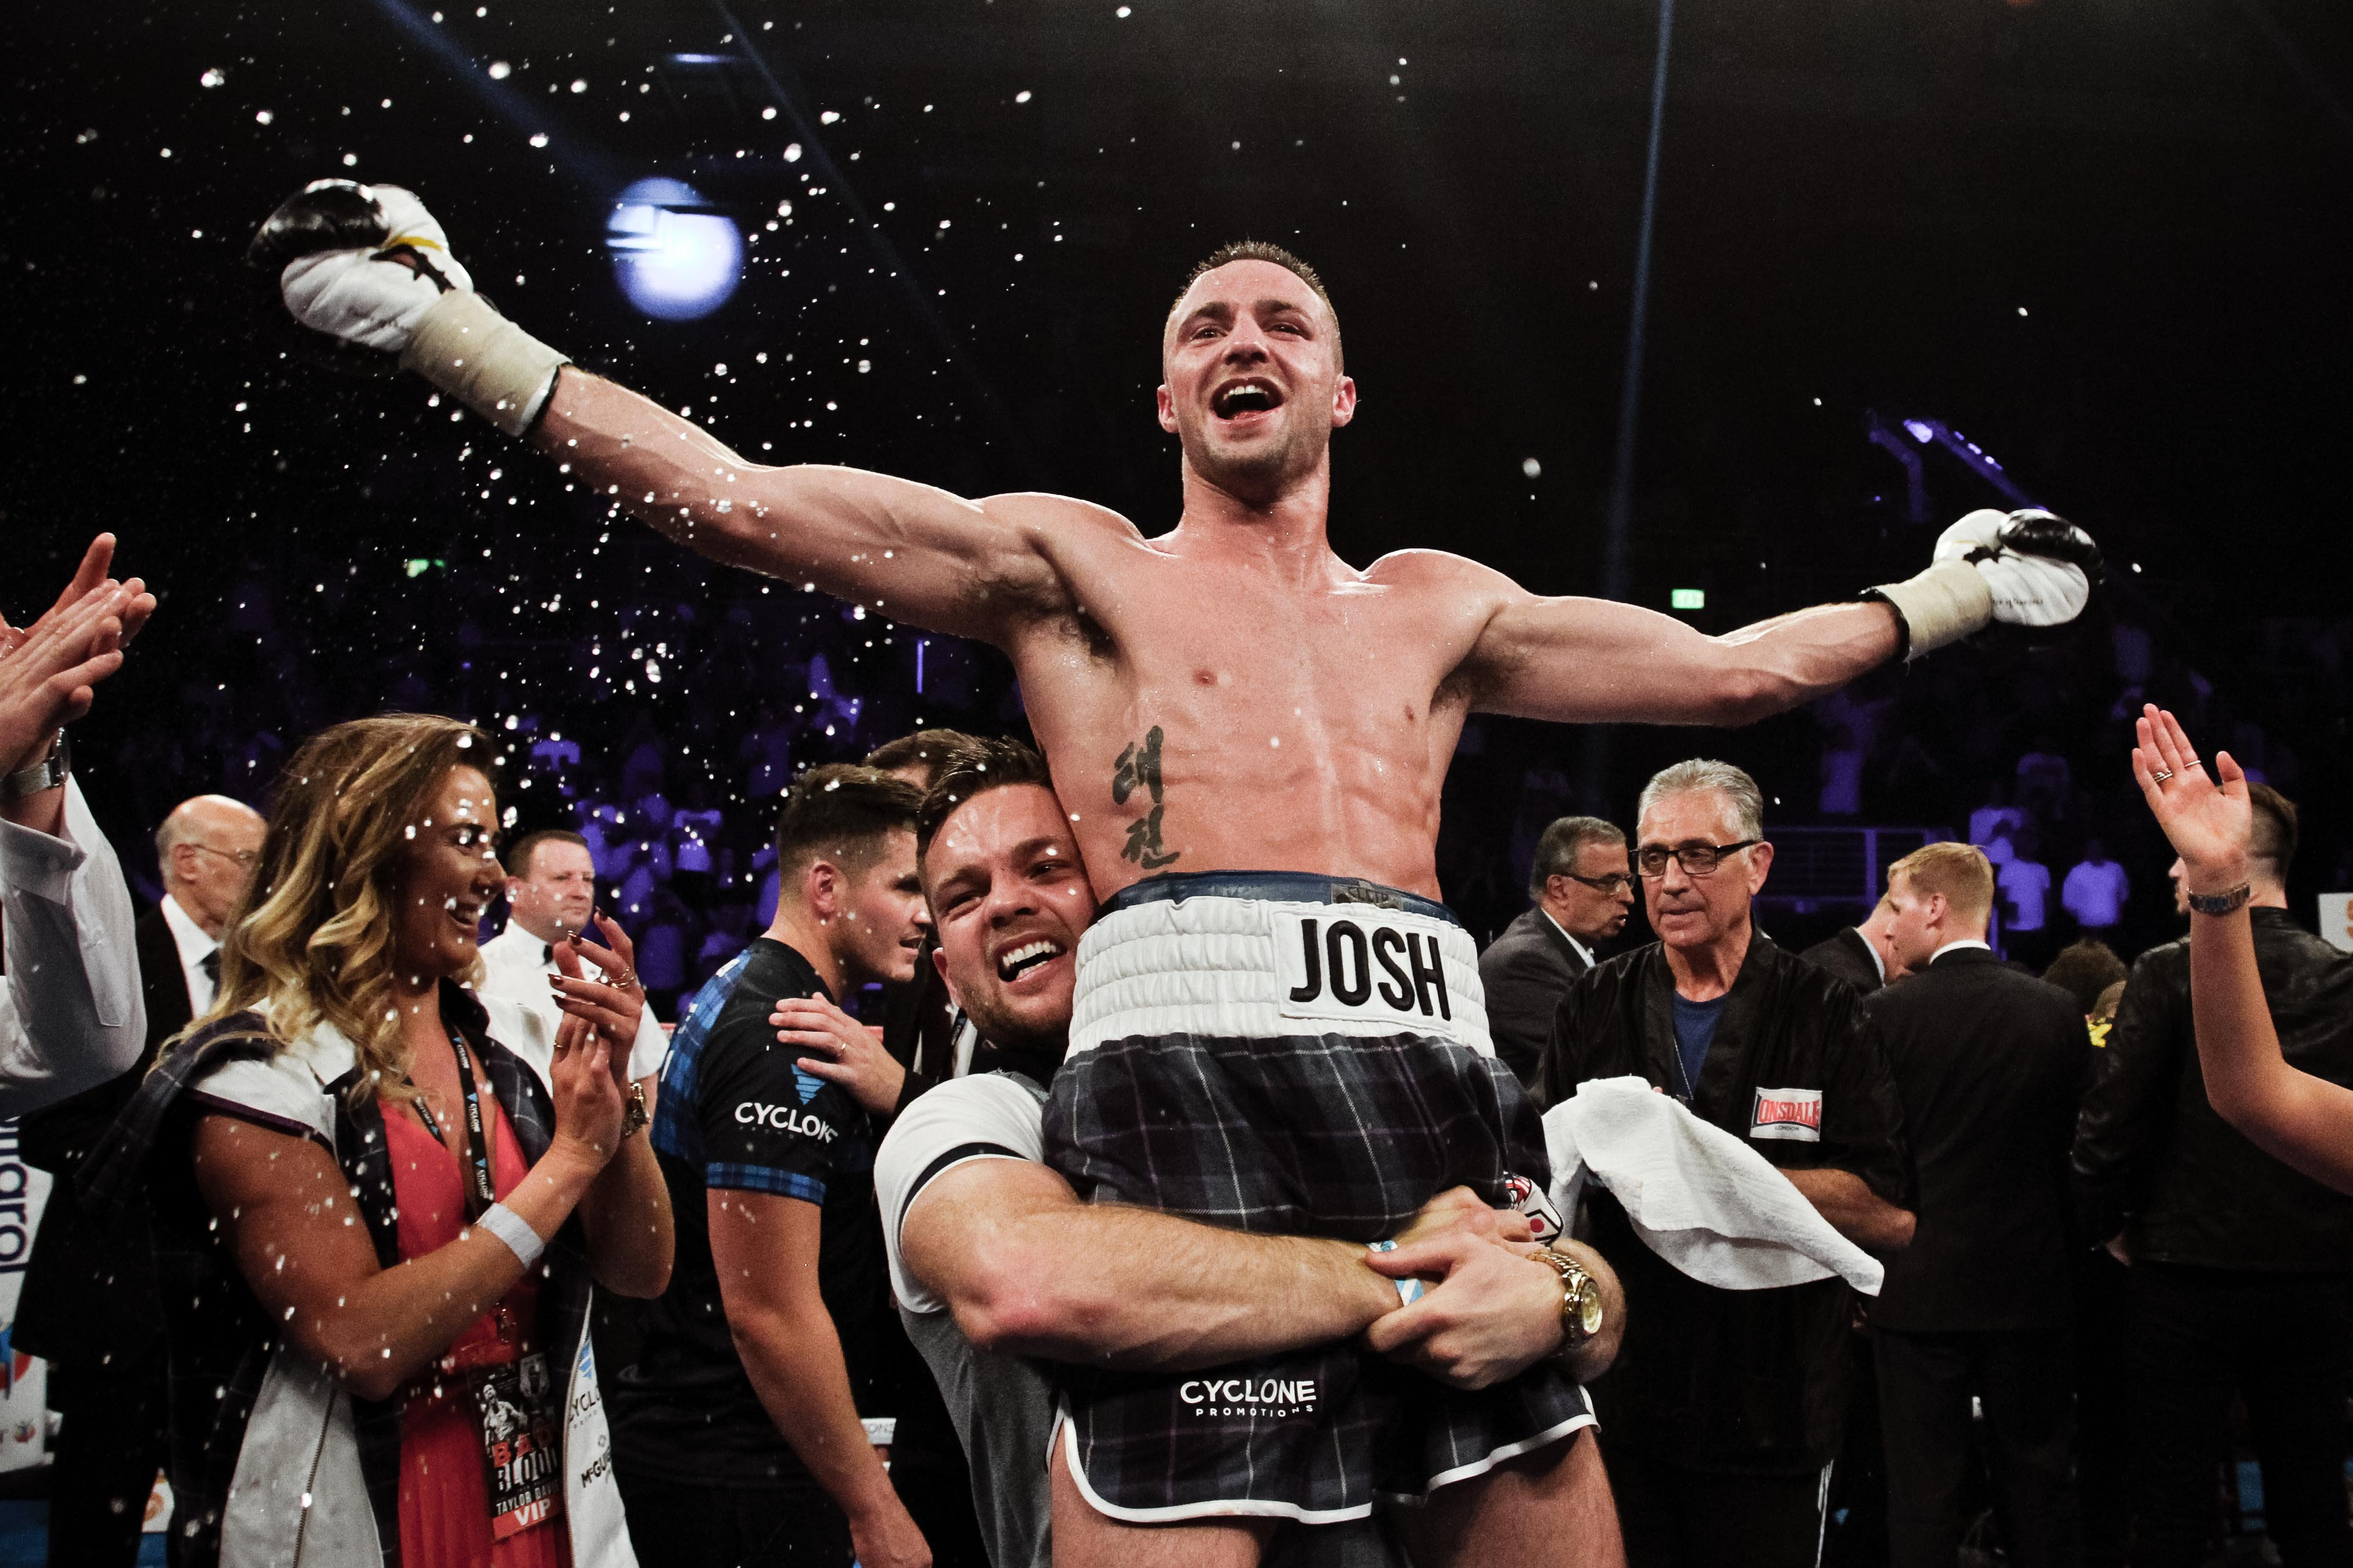 IMG 4550 2 - Josh Taylor outpoints Ivan Baranchyk, wins IBF junior welterweight title